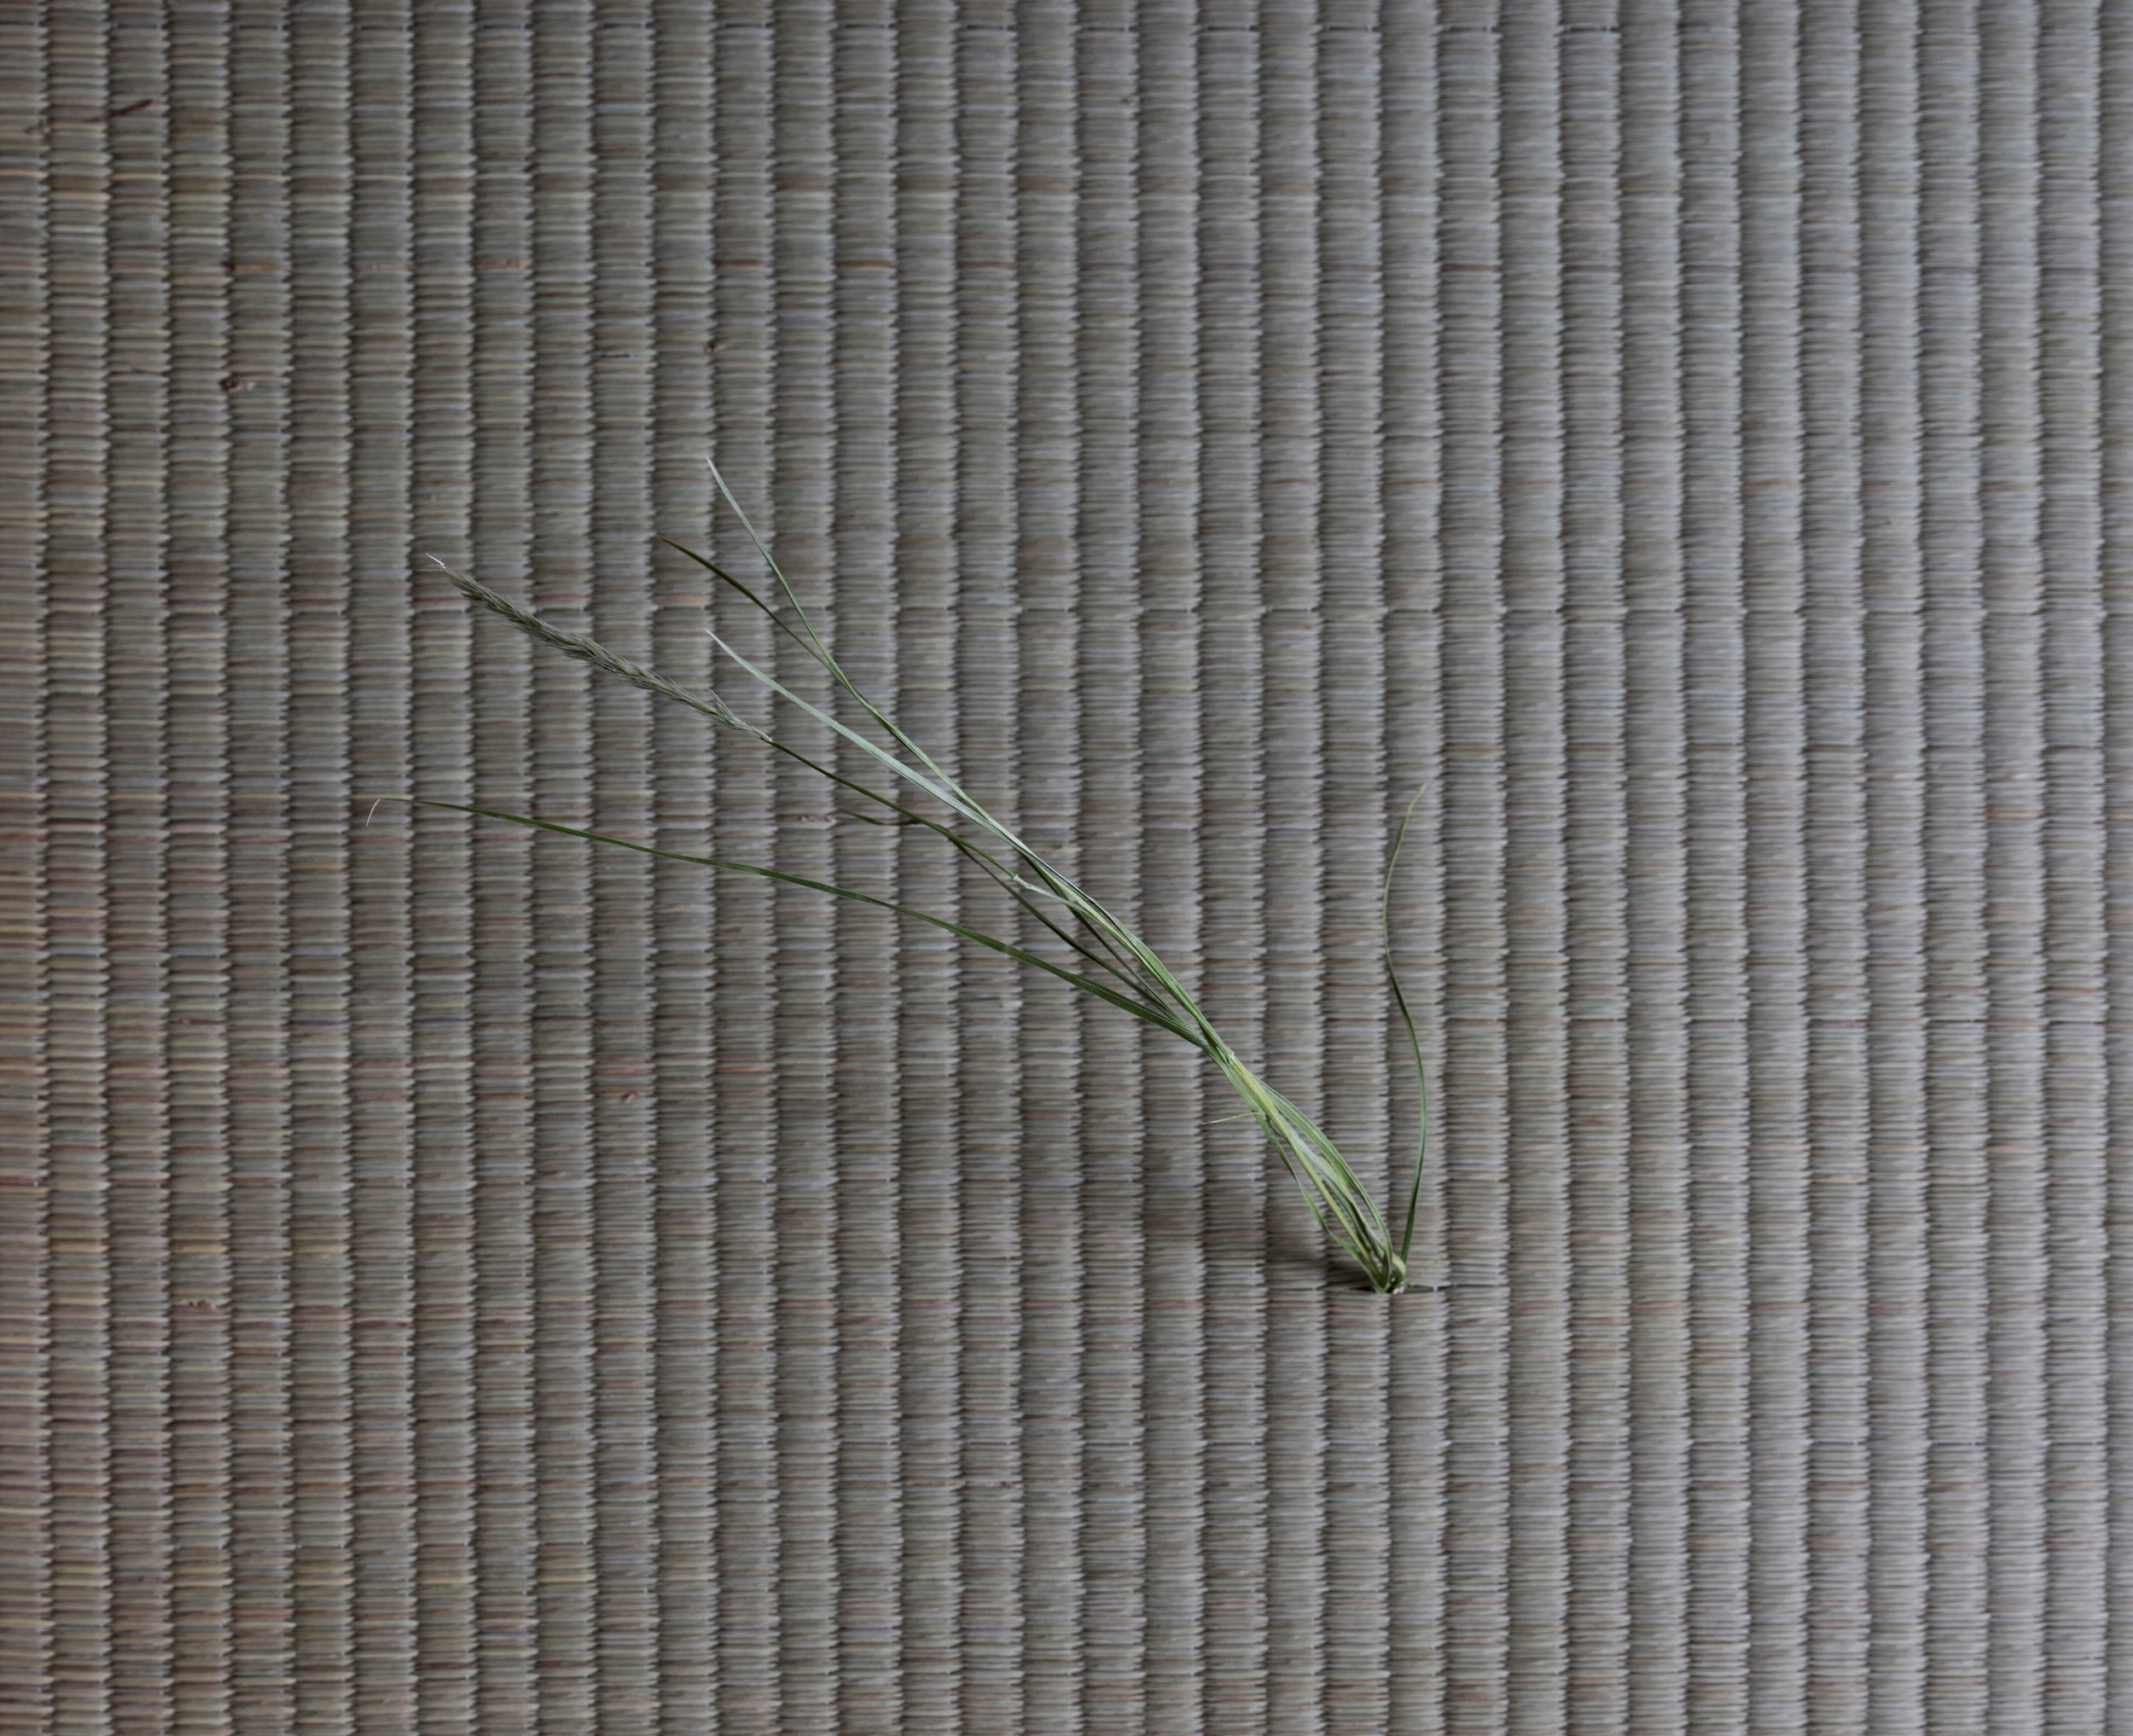 One Straw Revolution, detail, tatami, soil, various grasses, 2017